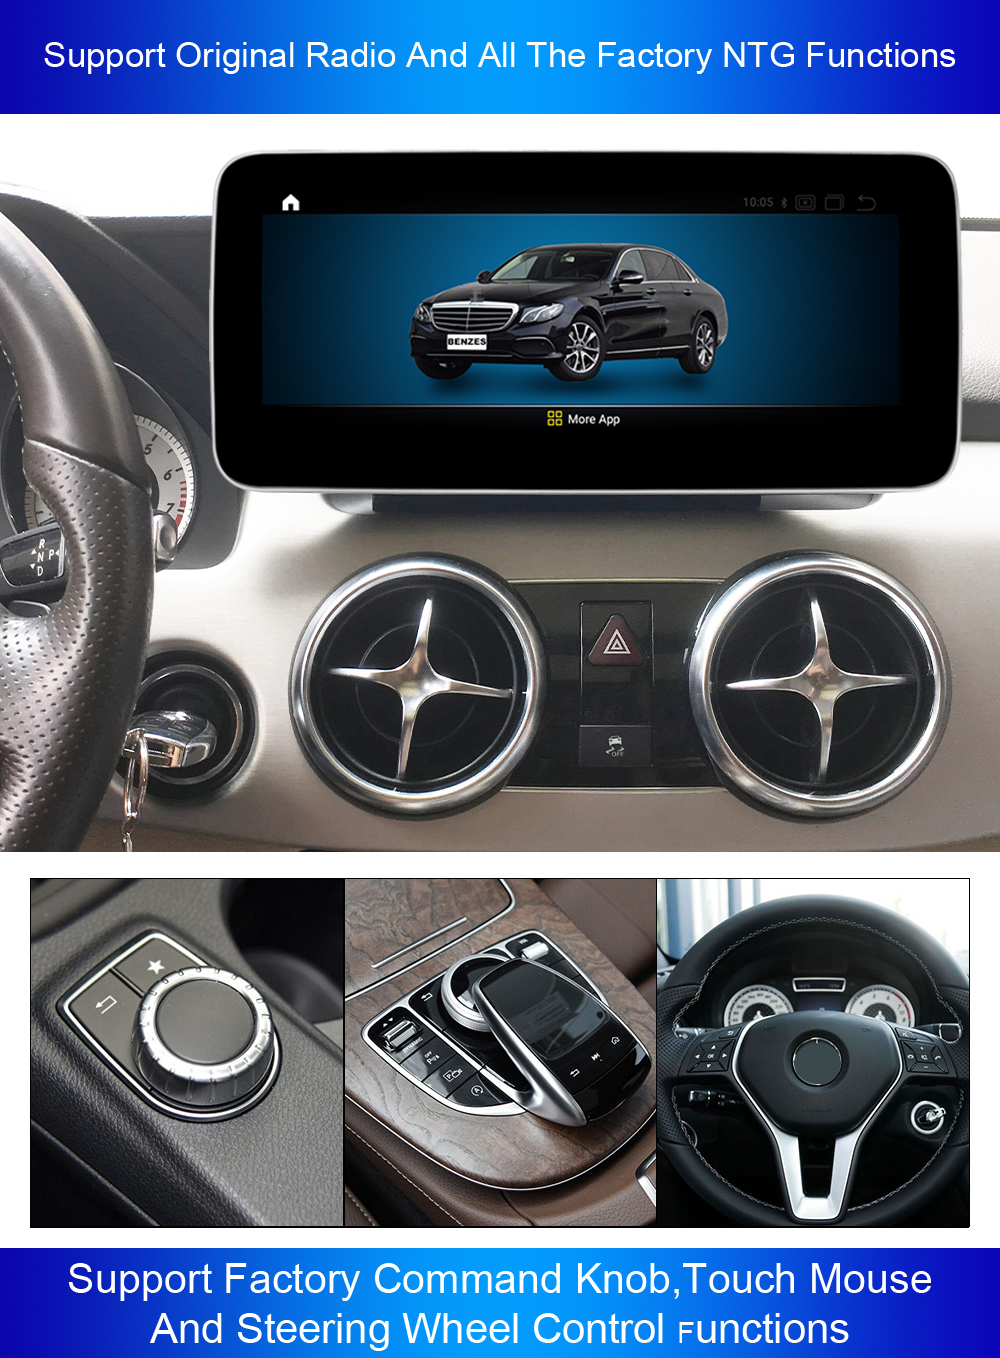 Bosstar 4 + 64G 10,25 zoll Android 9.0 auto stereo auto video für Benz E klasse/W207/W212 /C207/A207 gps navigation dvd player